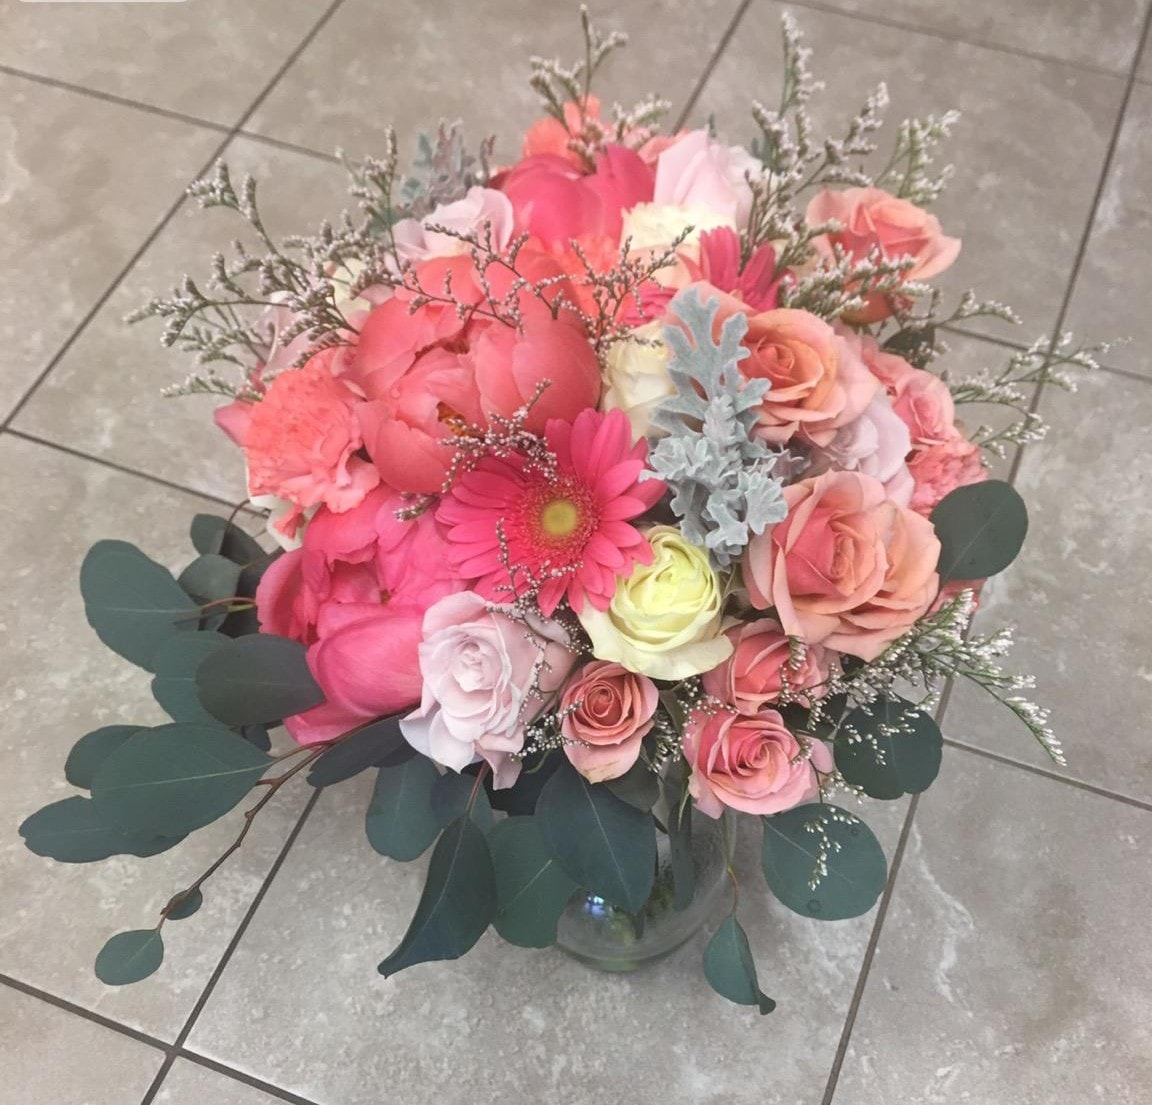 An image of a dazzling pink bouquet made at Reno's Floral.